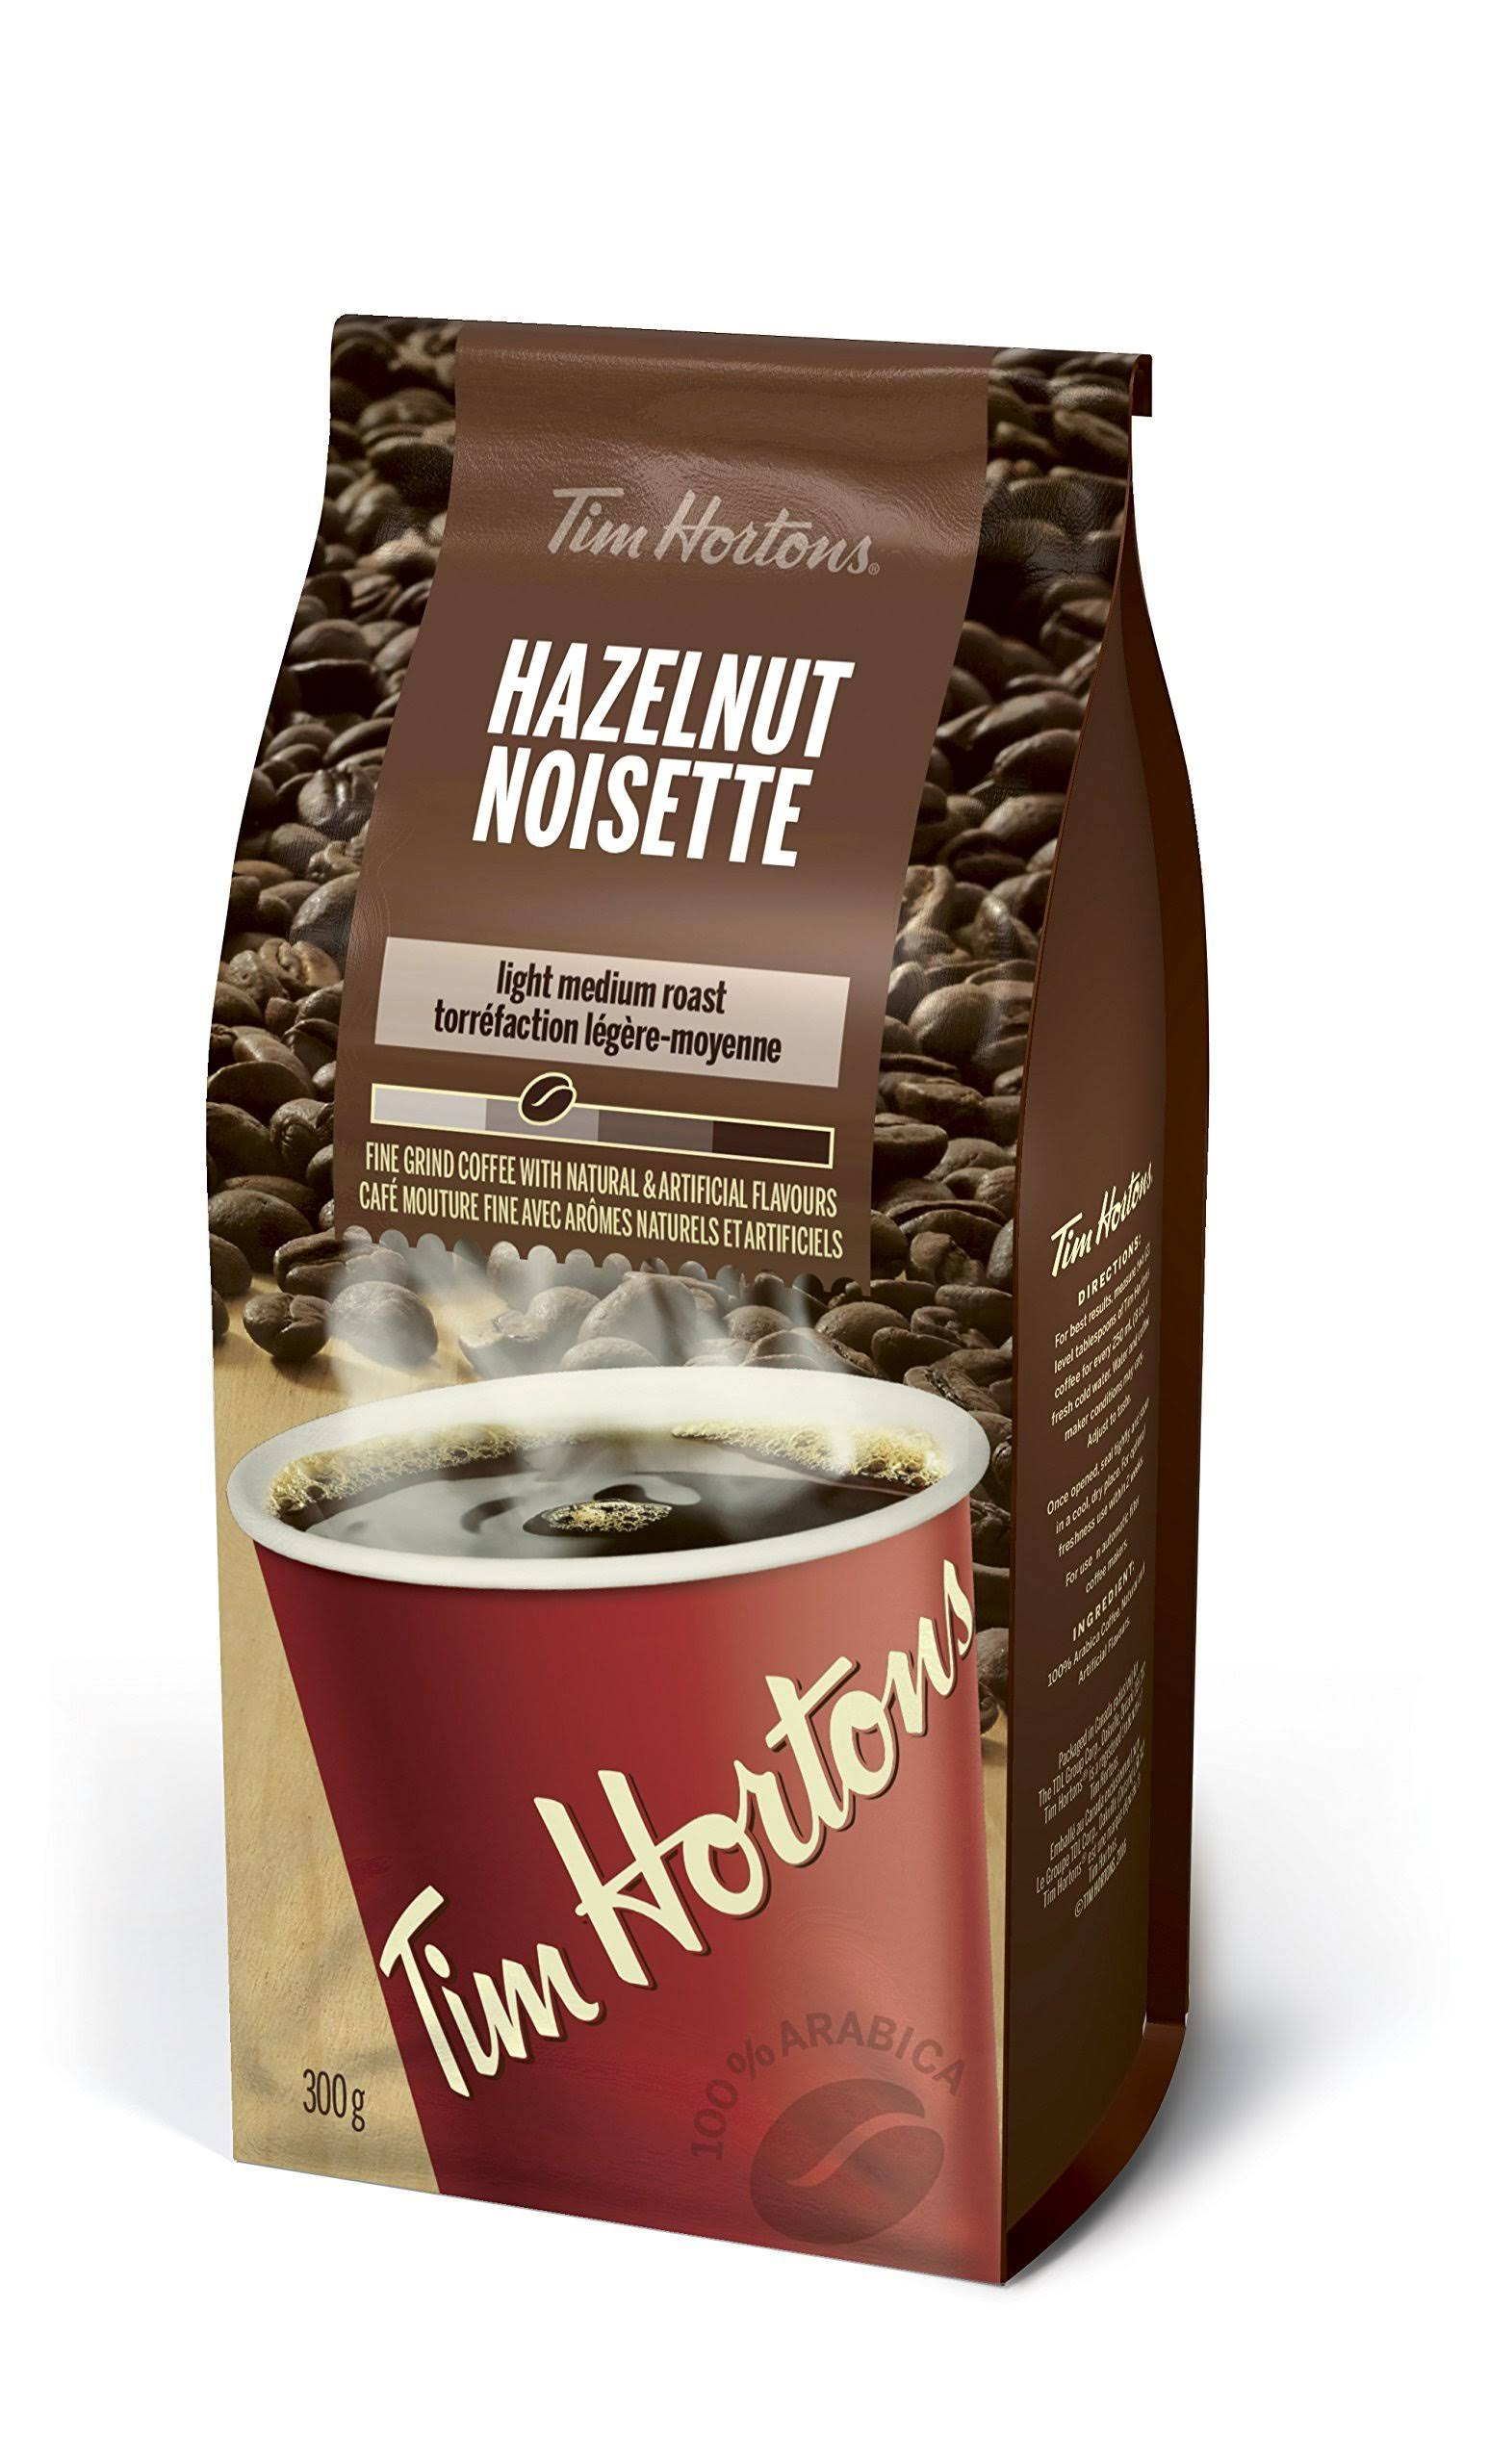 Tim Hortons Hazelnut (Noisette) Light Medium Roast Fine Grind Coffee - 300g